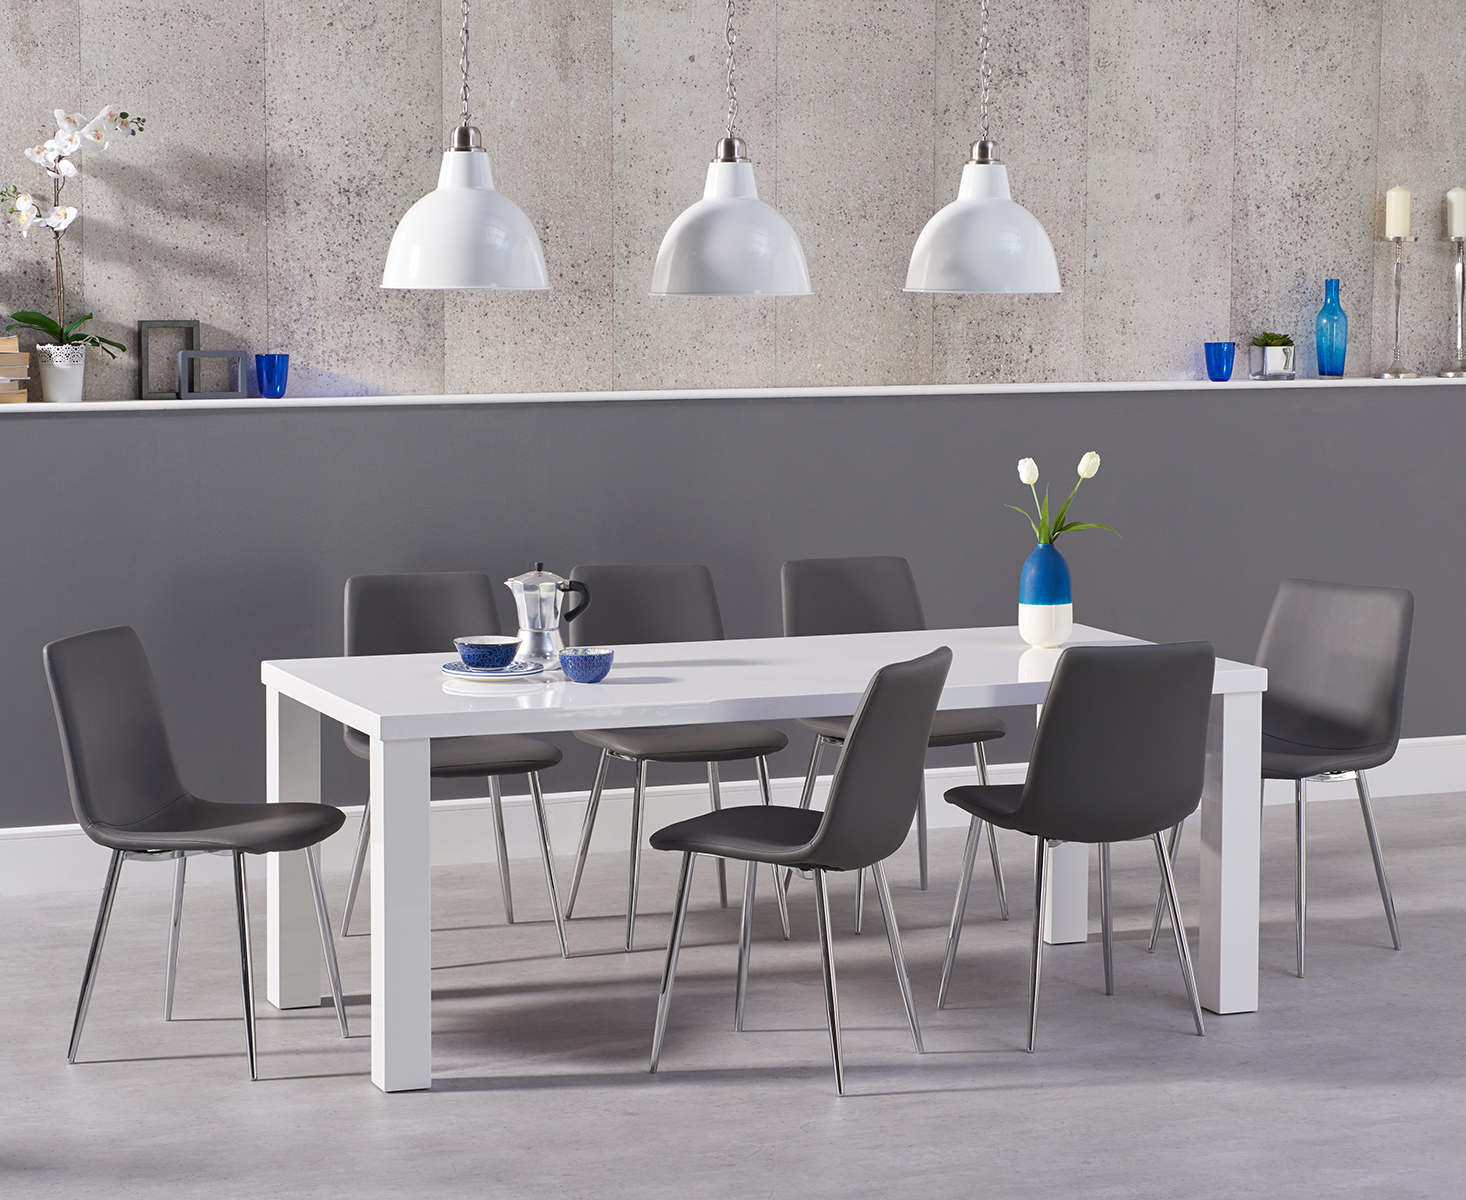 An image of Atlanta 160cm White High Gloss Dining Table with Helsinki Faux Leather Chairs